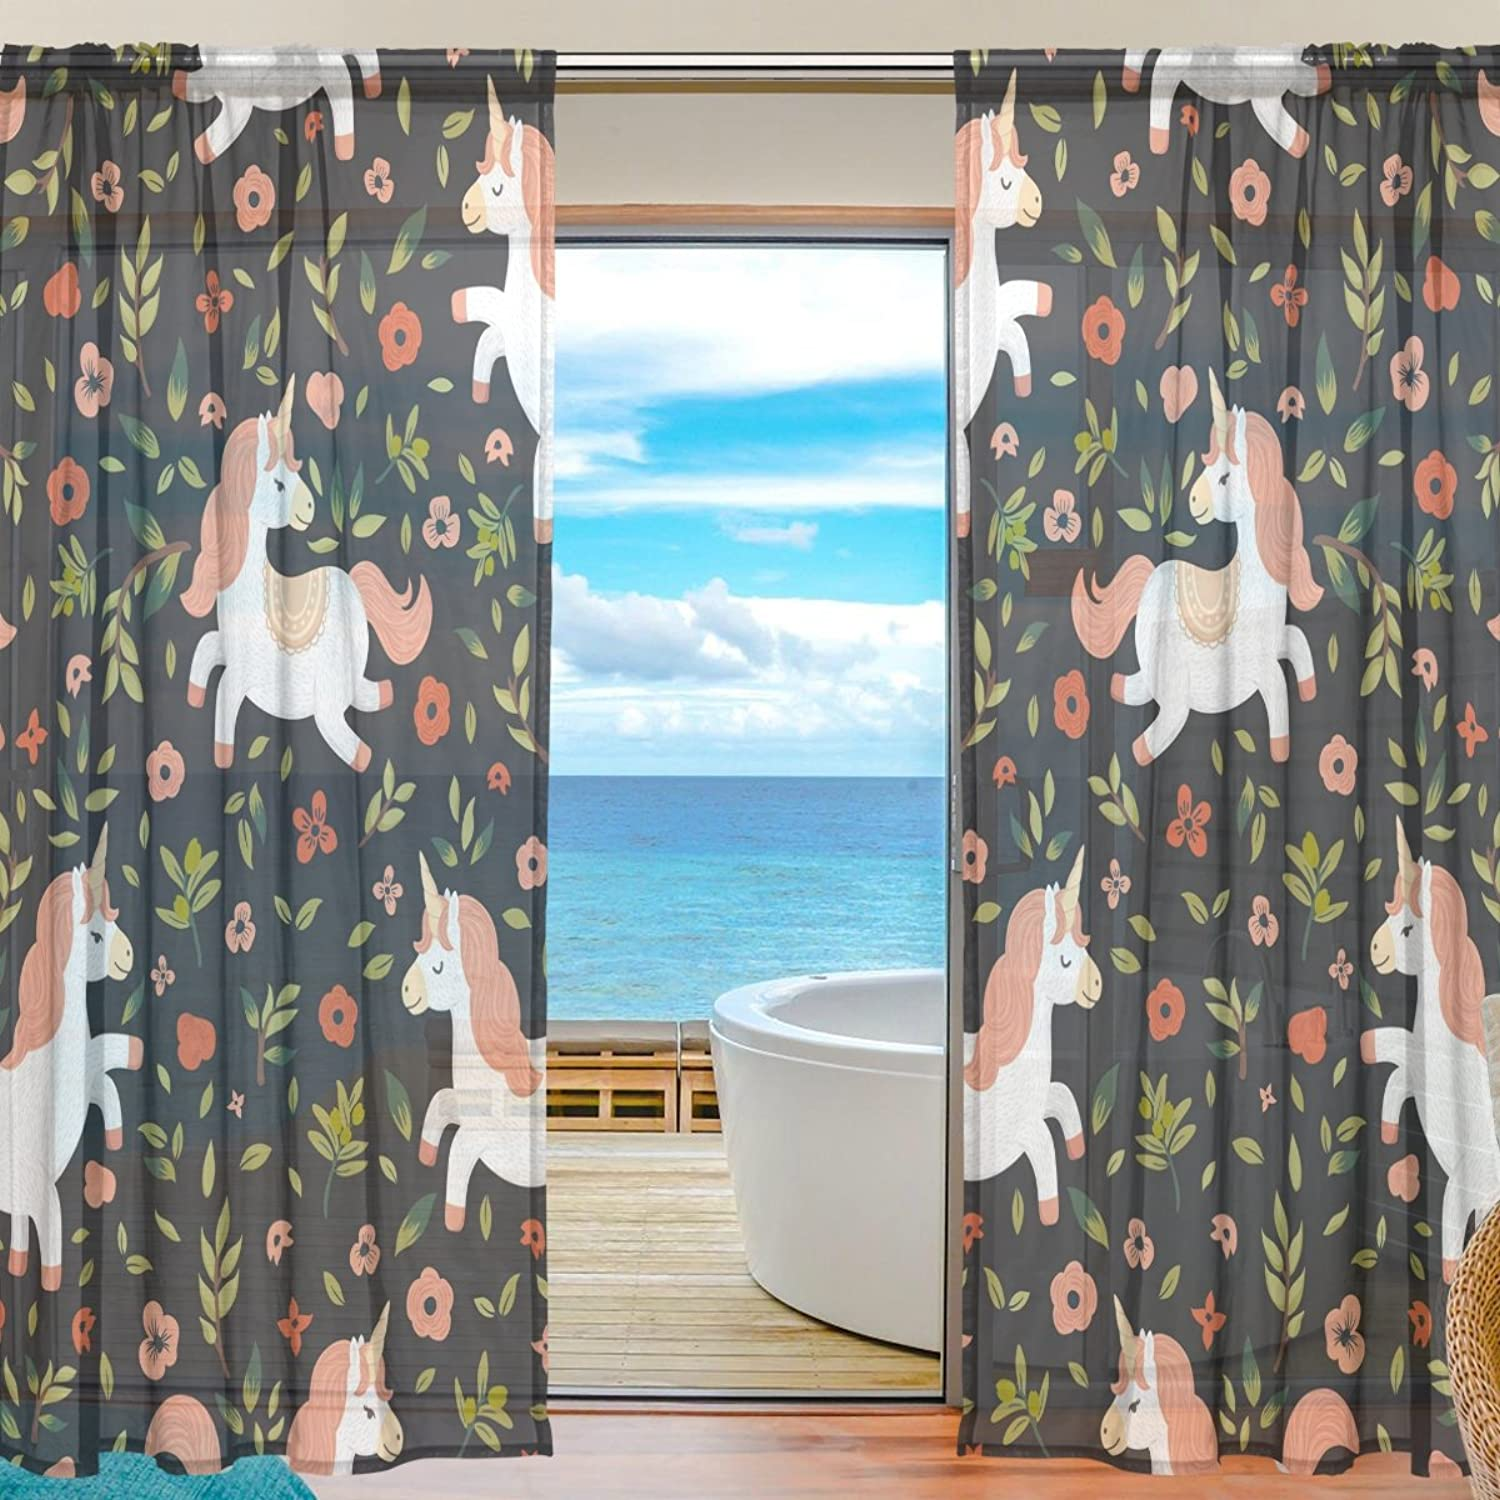 Vantaso Sheer Curtains 78 inch Baby Unicorn Funny in Flowers Green Leaves for Kids Girls Bedroom Living Room Window Decorative 2 Panels